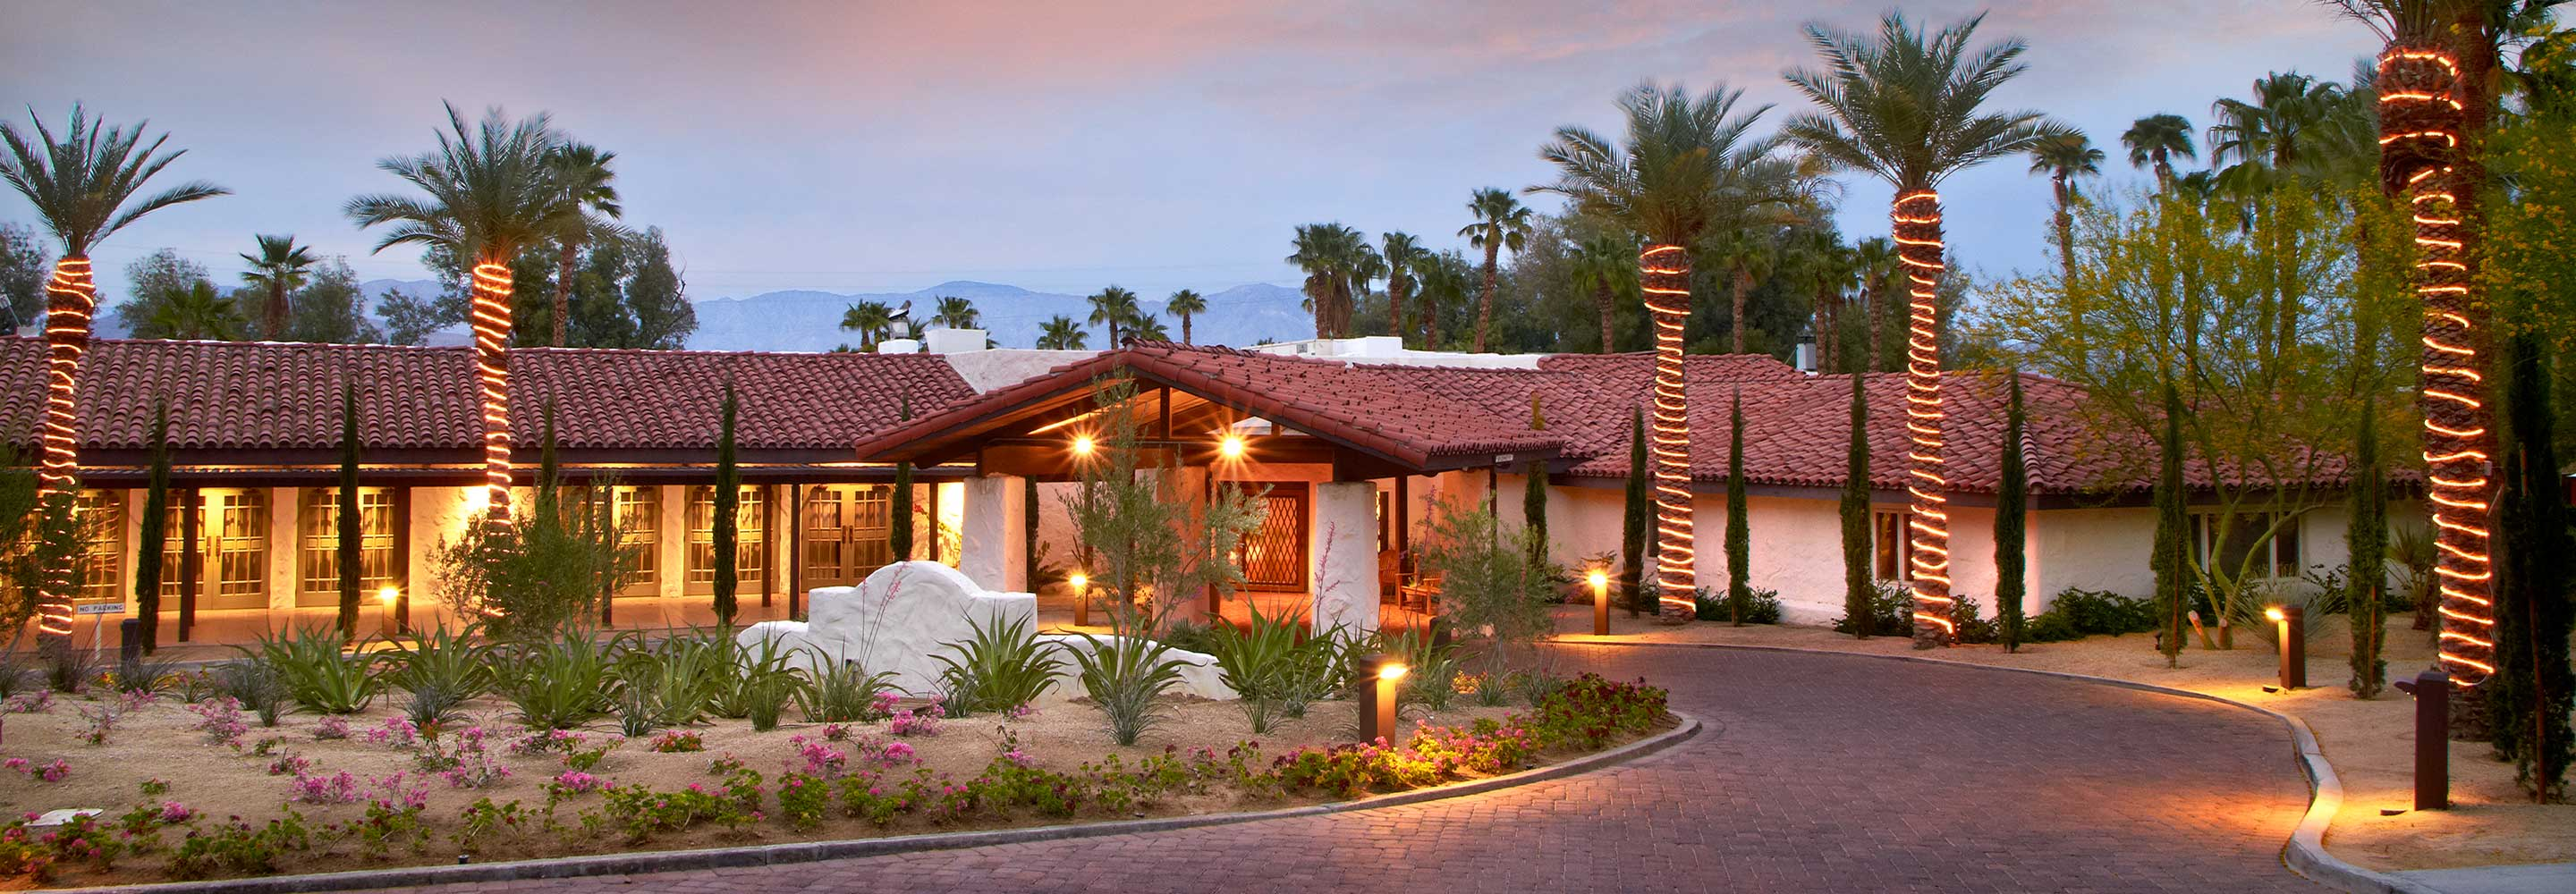 La Casa Del Zorro Resort, Borrego Springs, CA